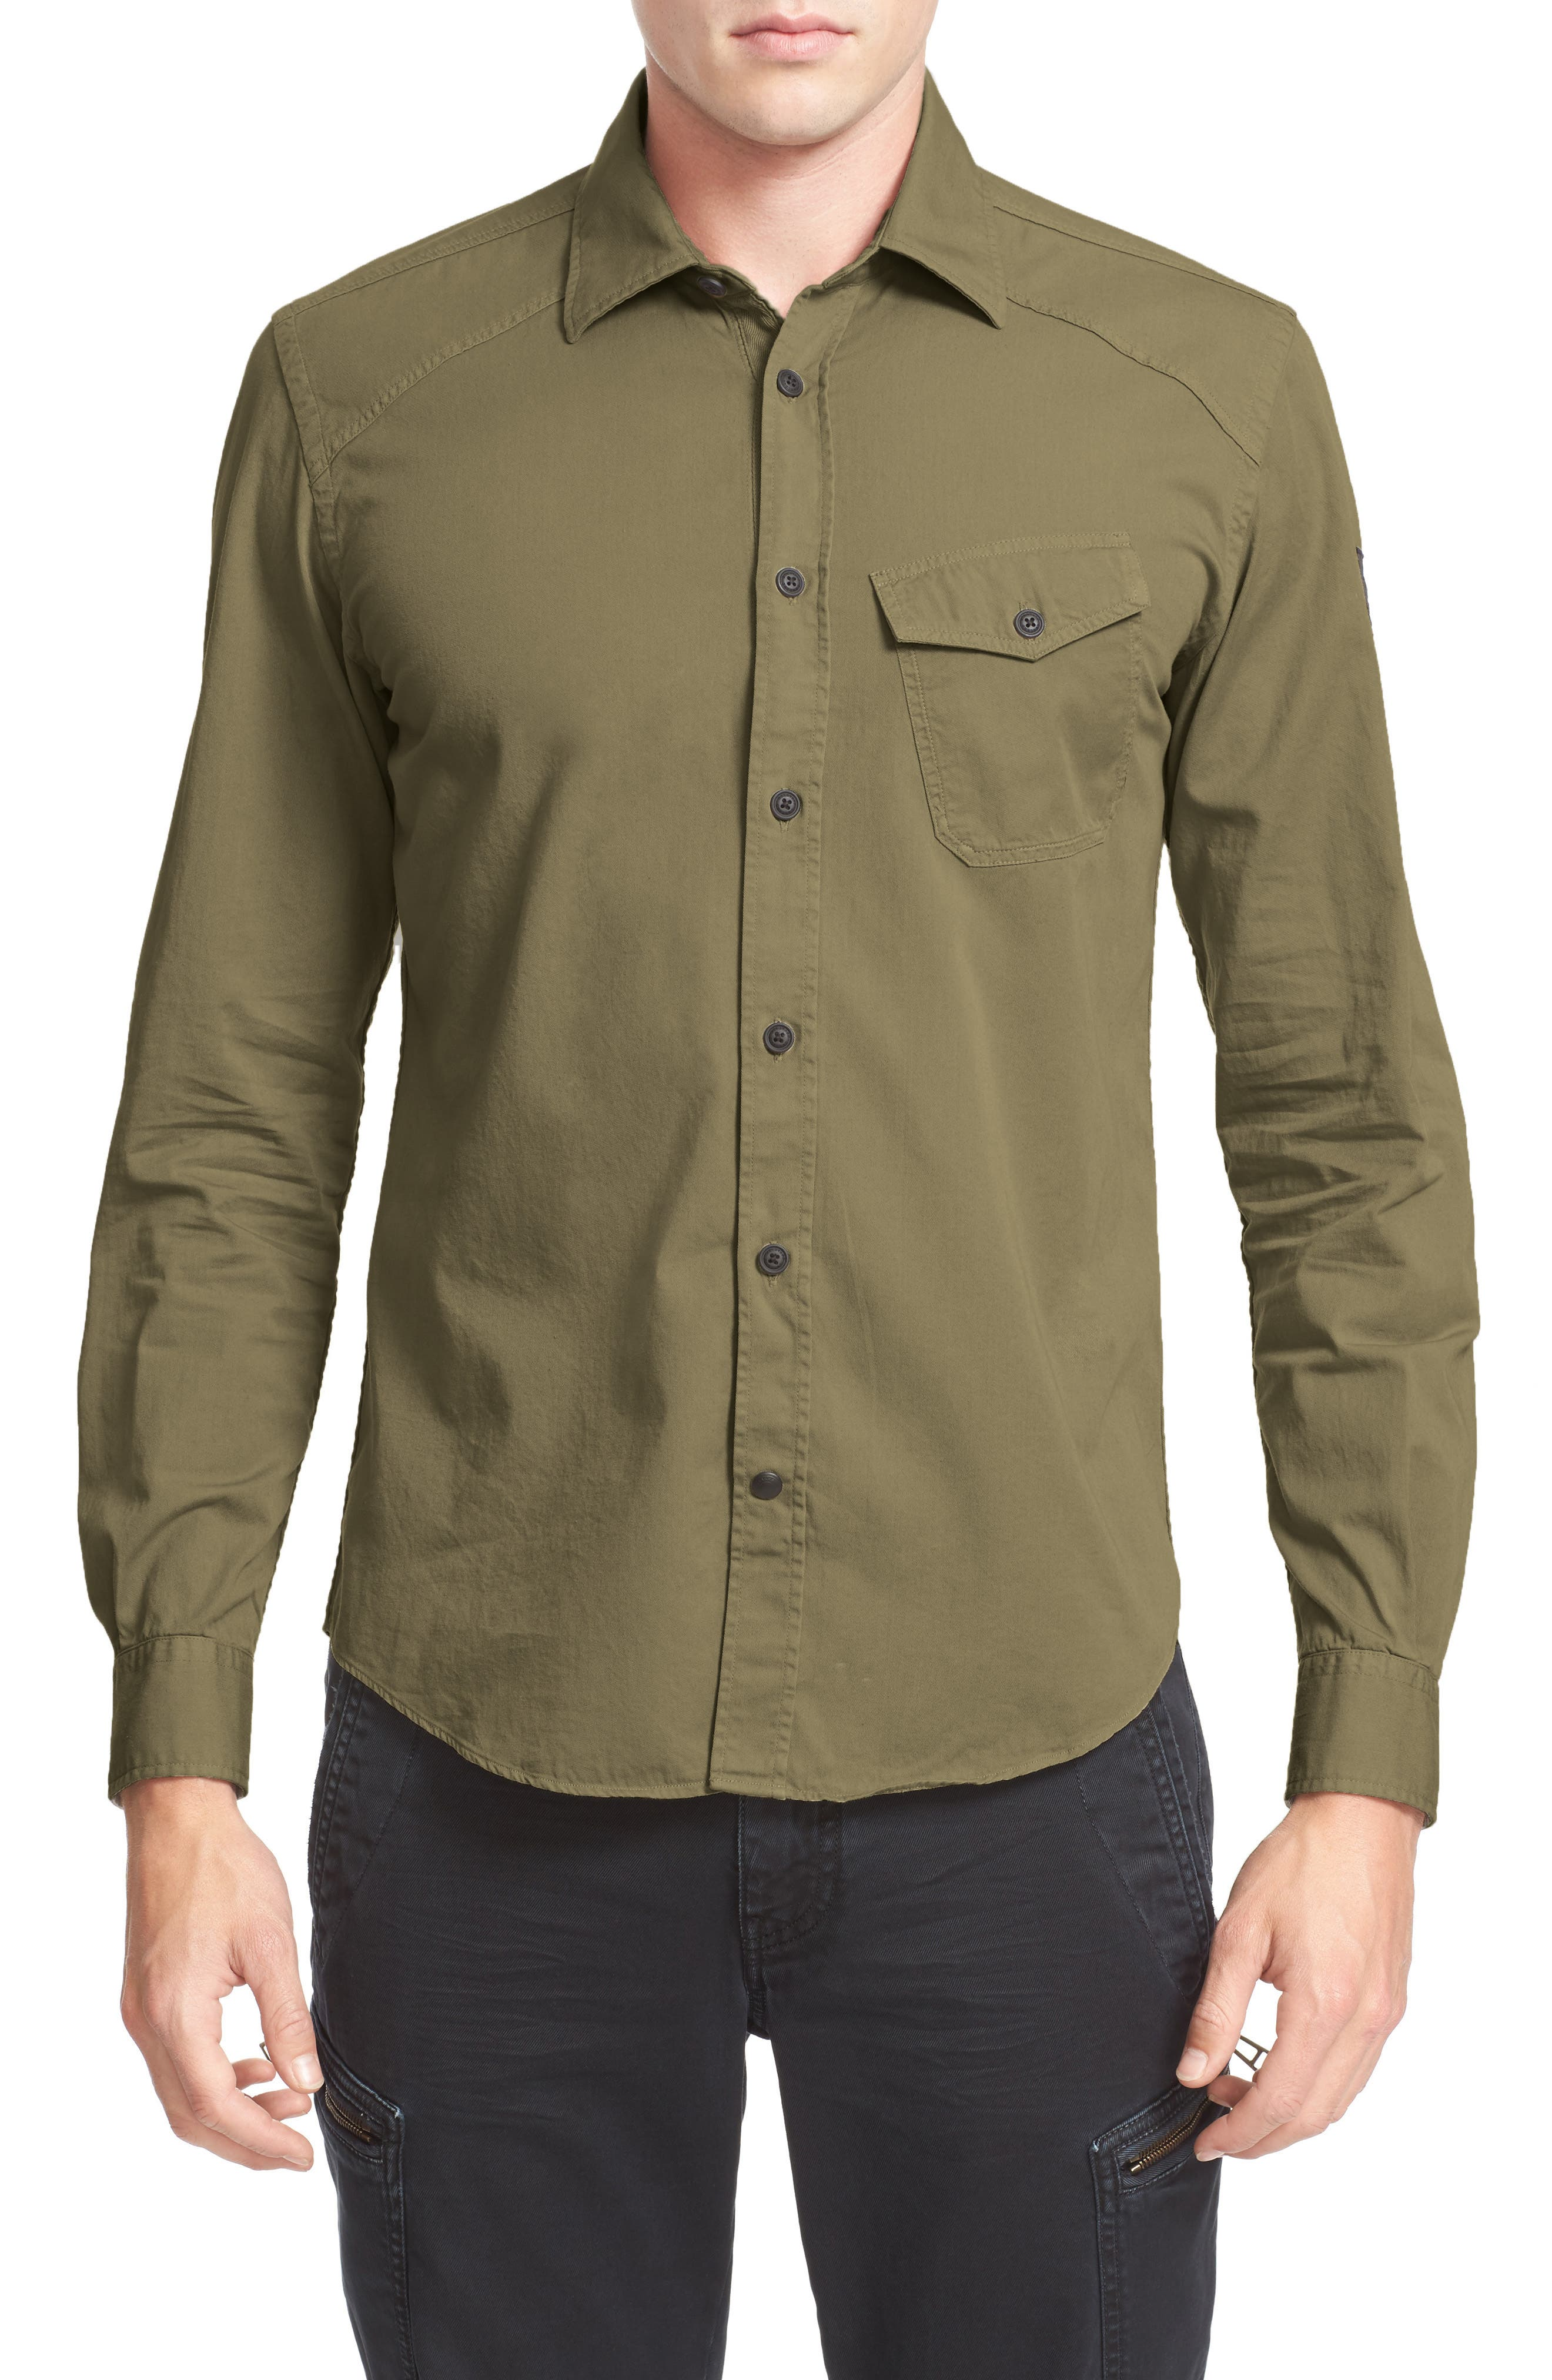 Steadway Woven Shirt,                         Main,                         color, Military Green